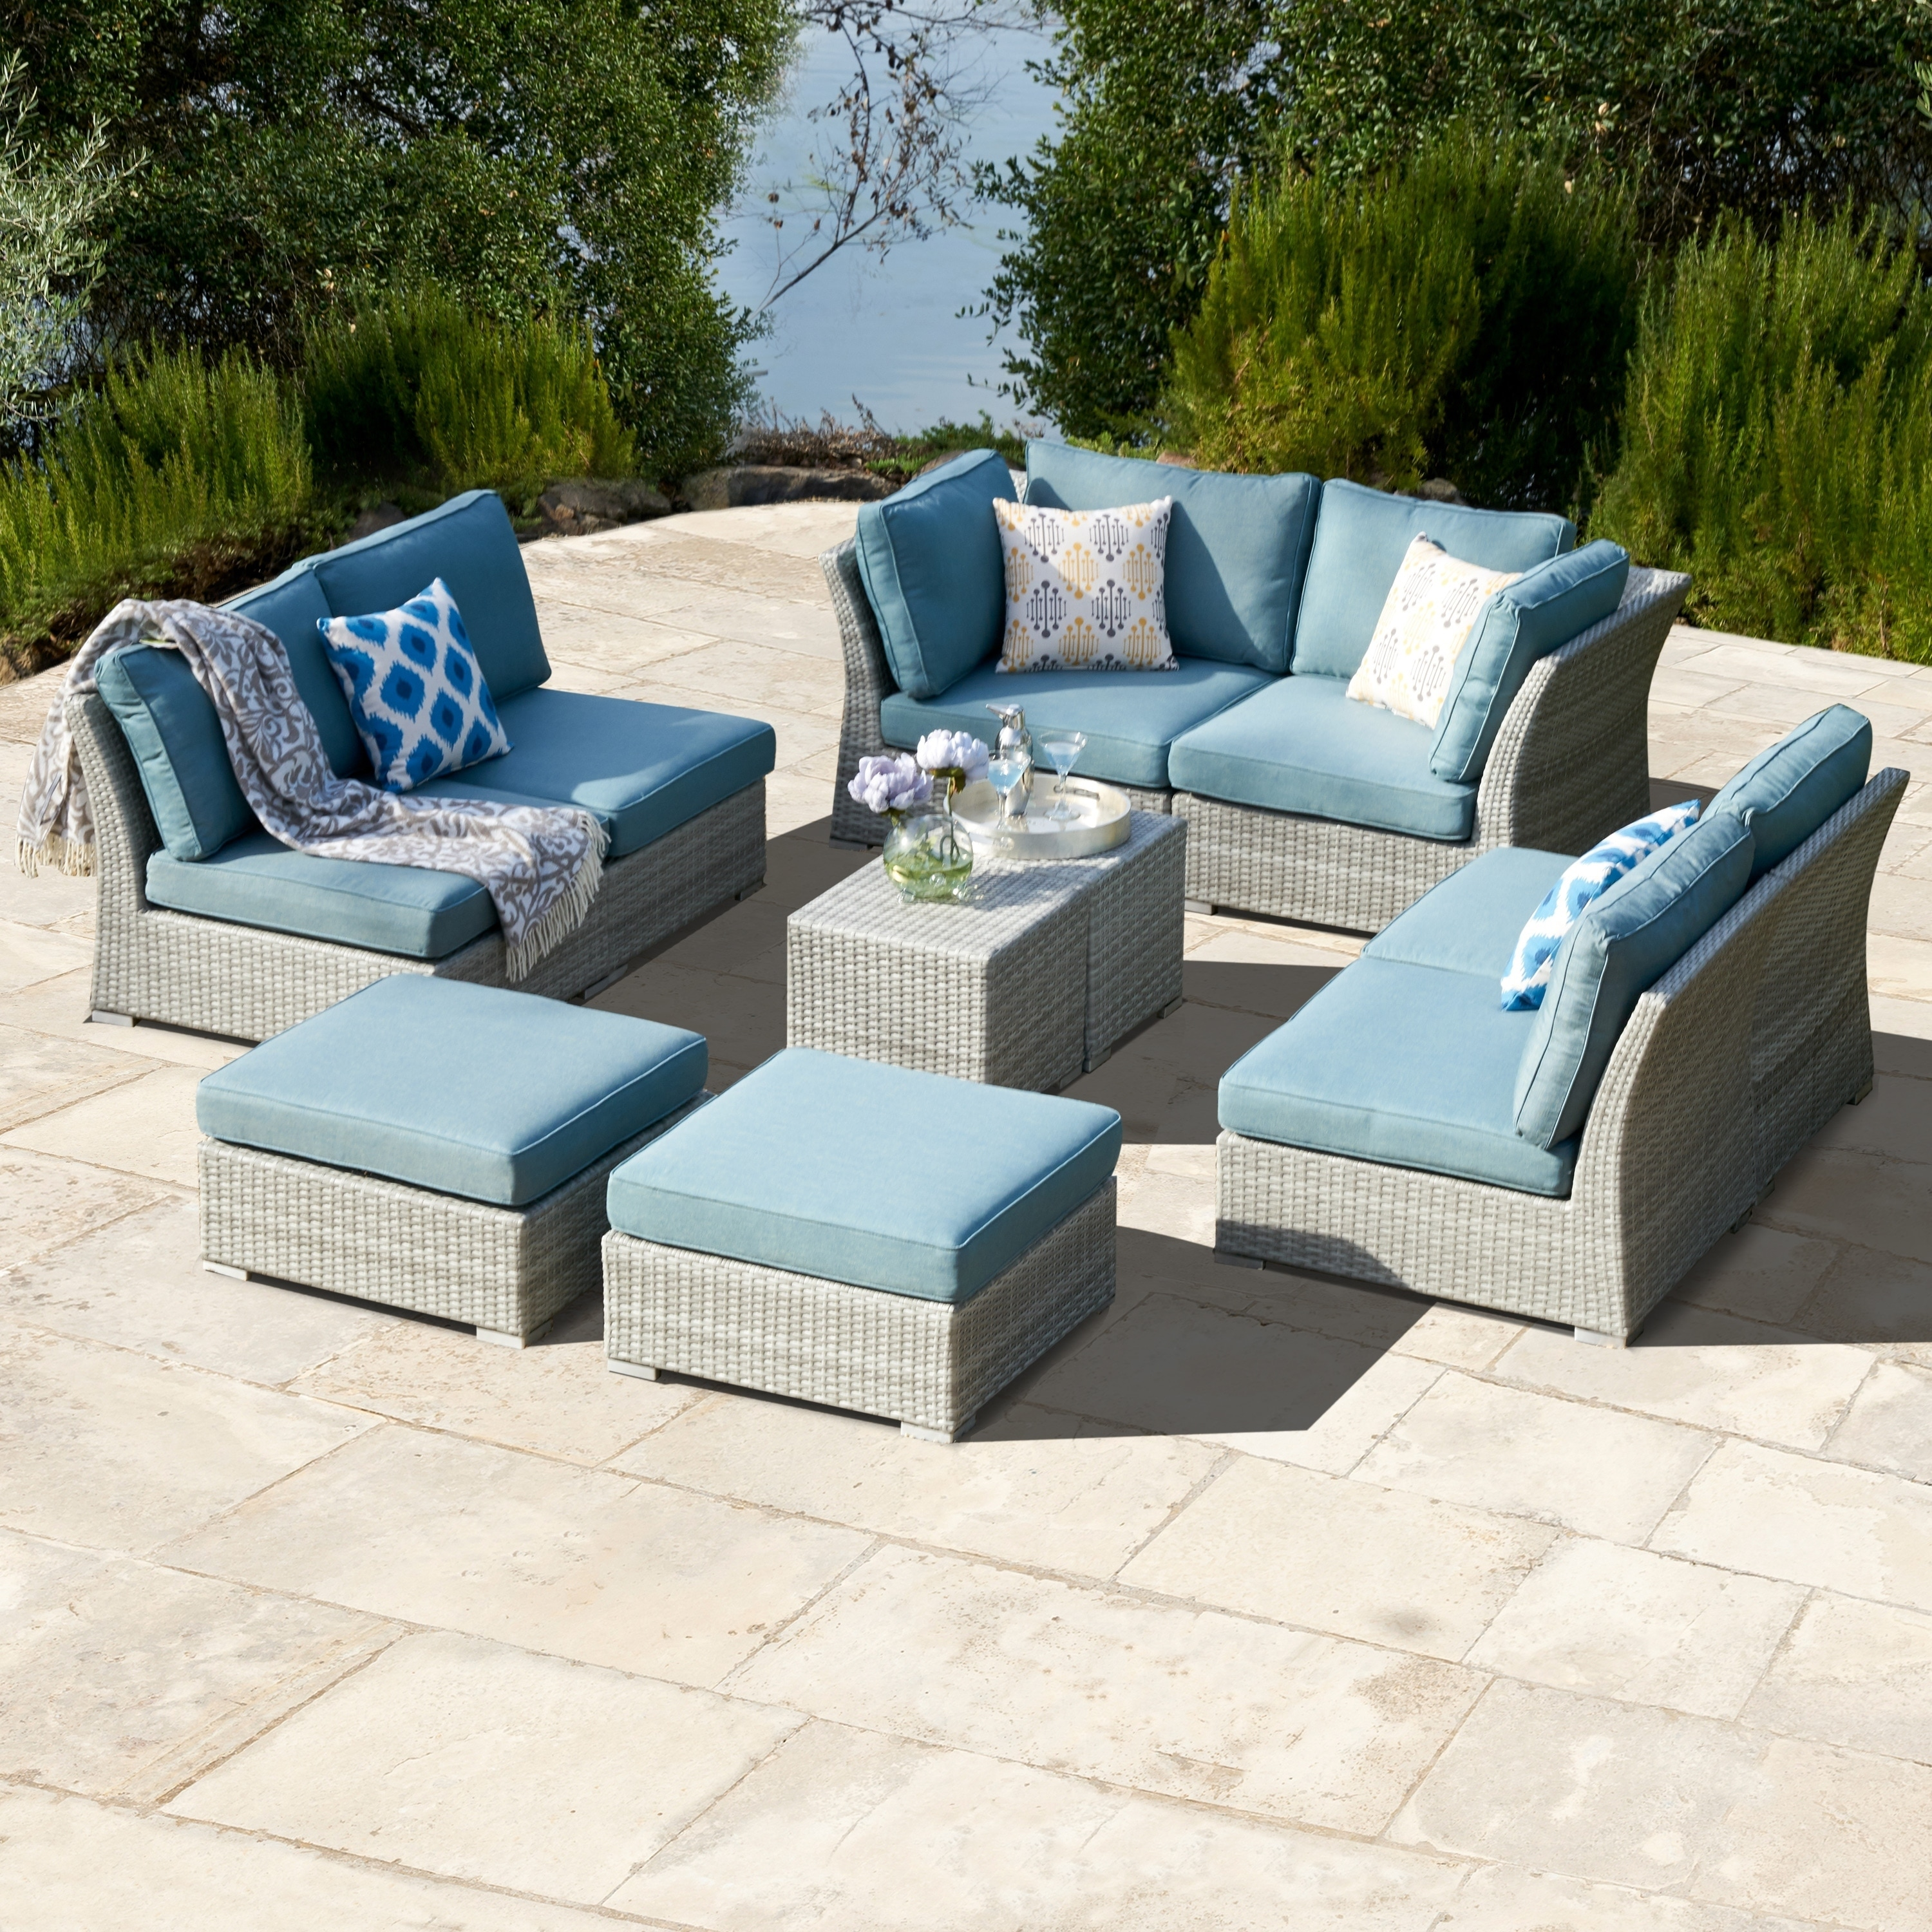 Incroyable Shop Corvus 10 Piece Grey Wicker Patio Furniture Set With Blue Cushions    On Sale   Free Shipping Today   Overstock.com   17158238